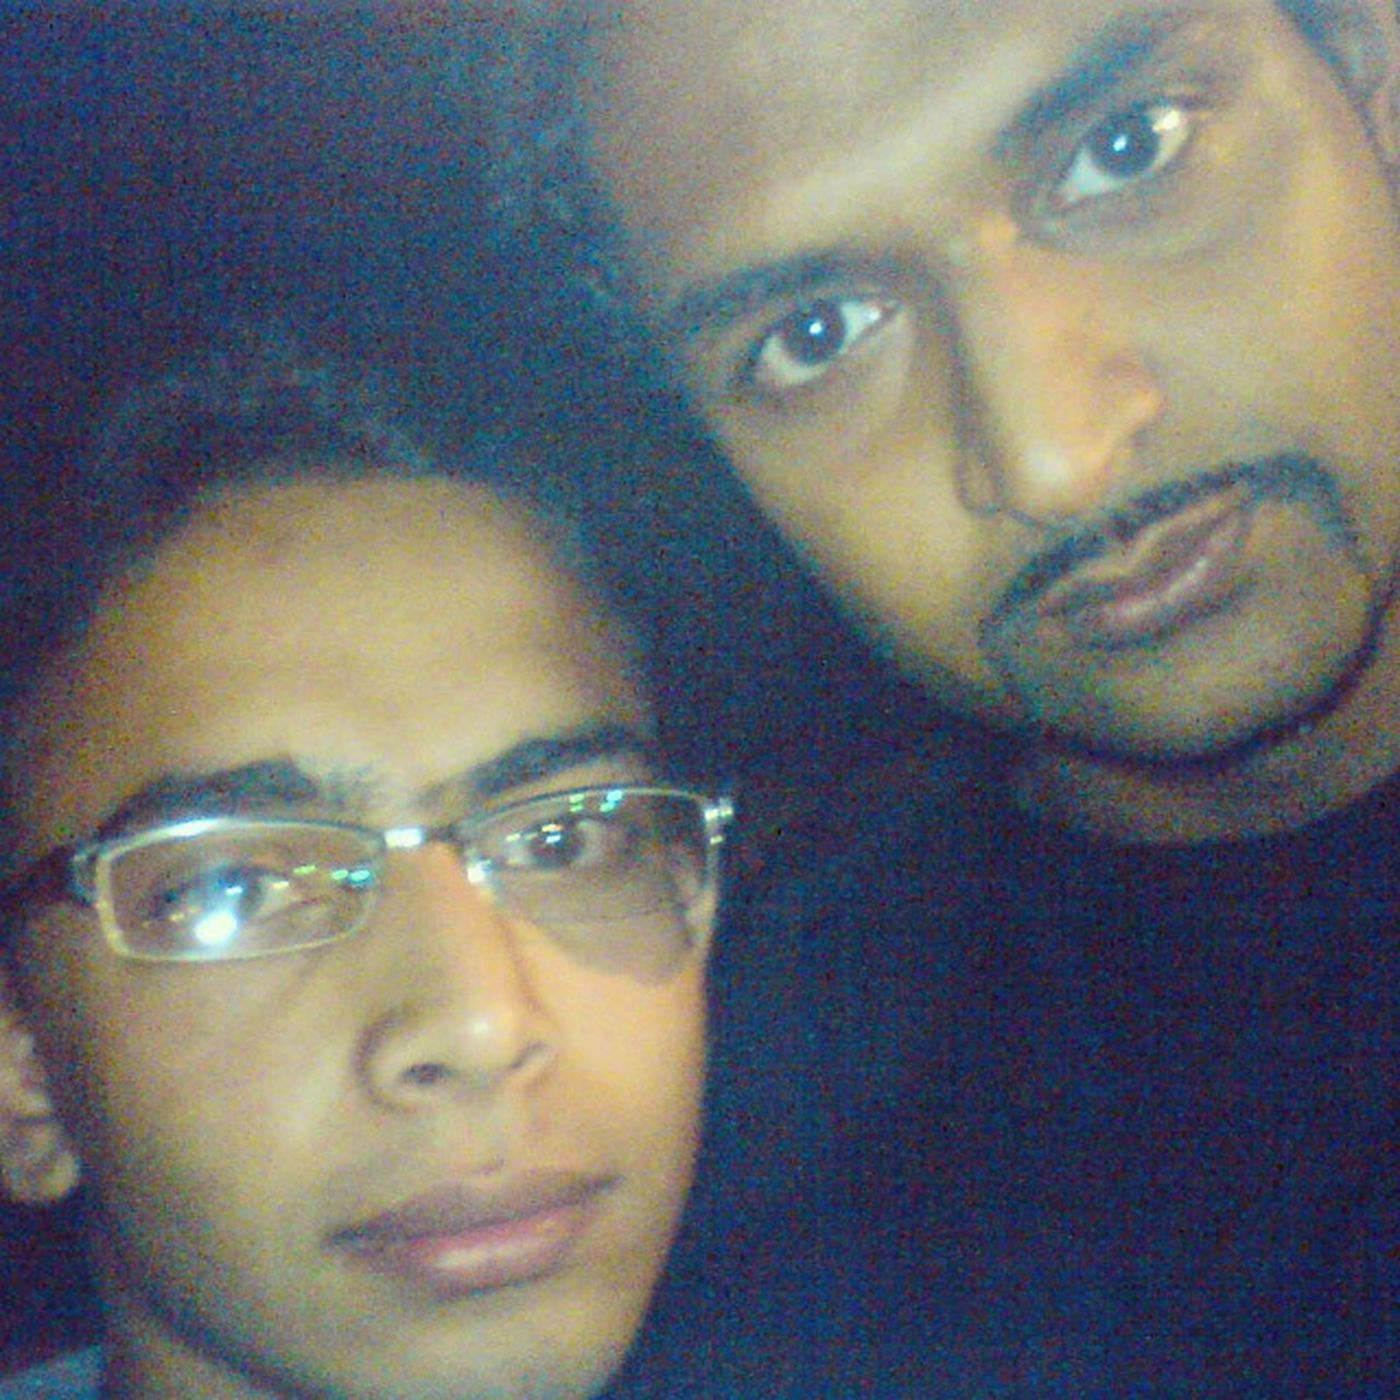 With iraj2011 Best  music composerYFM Old days